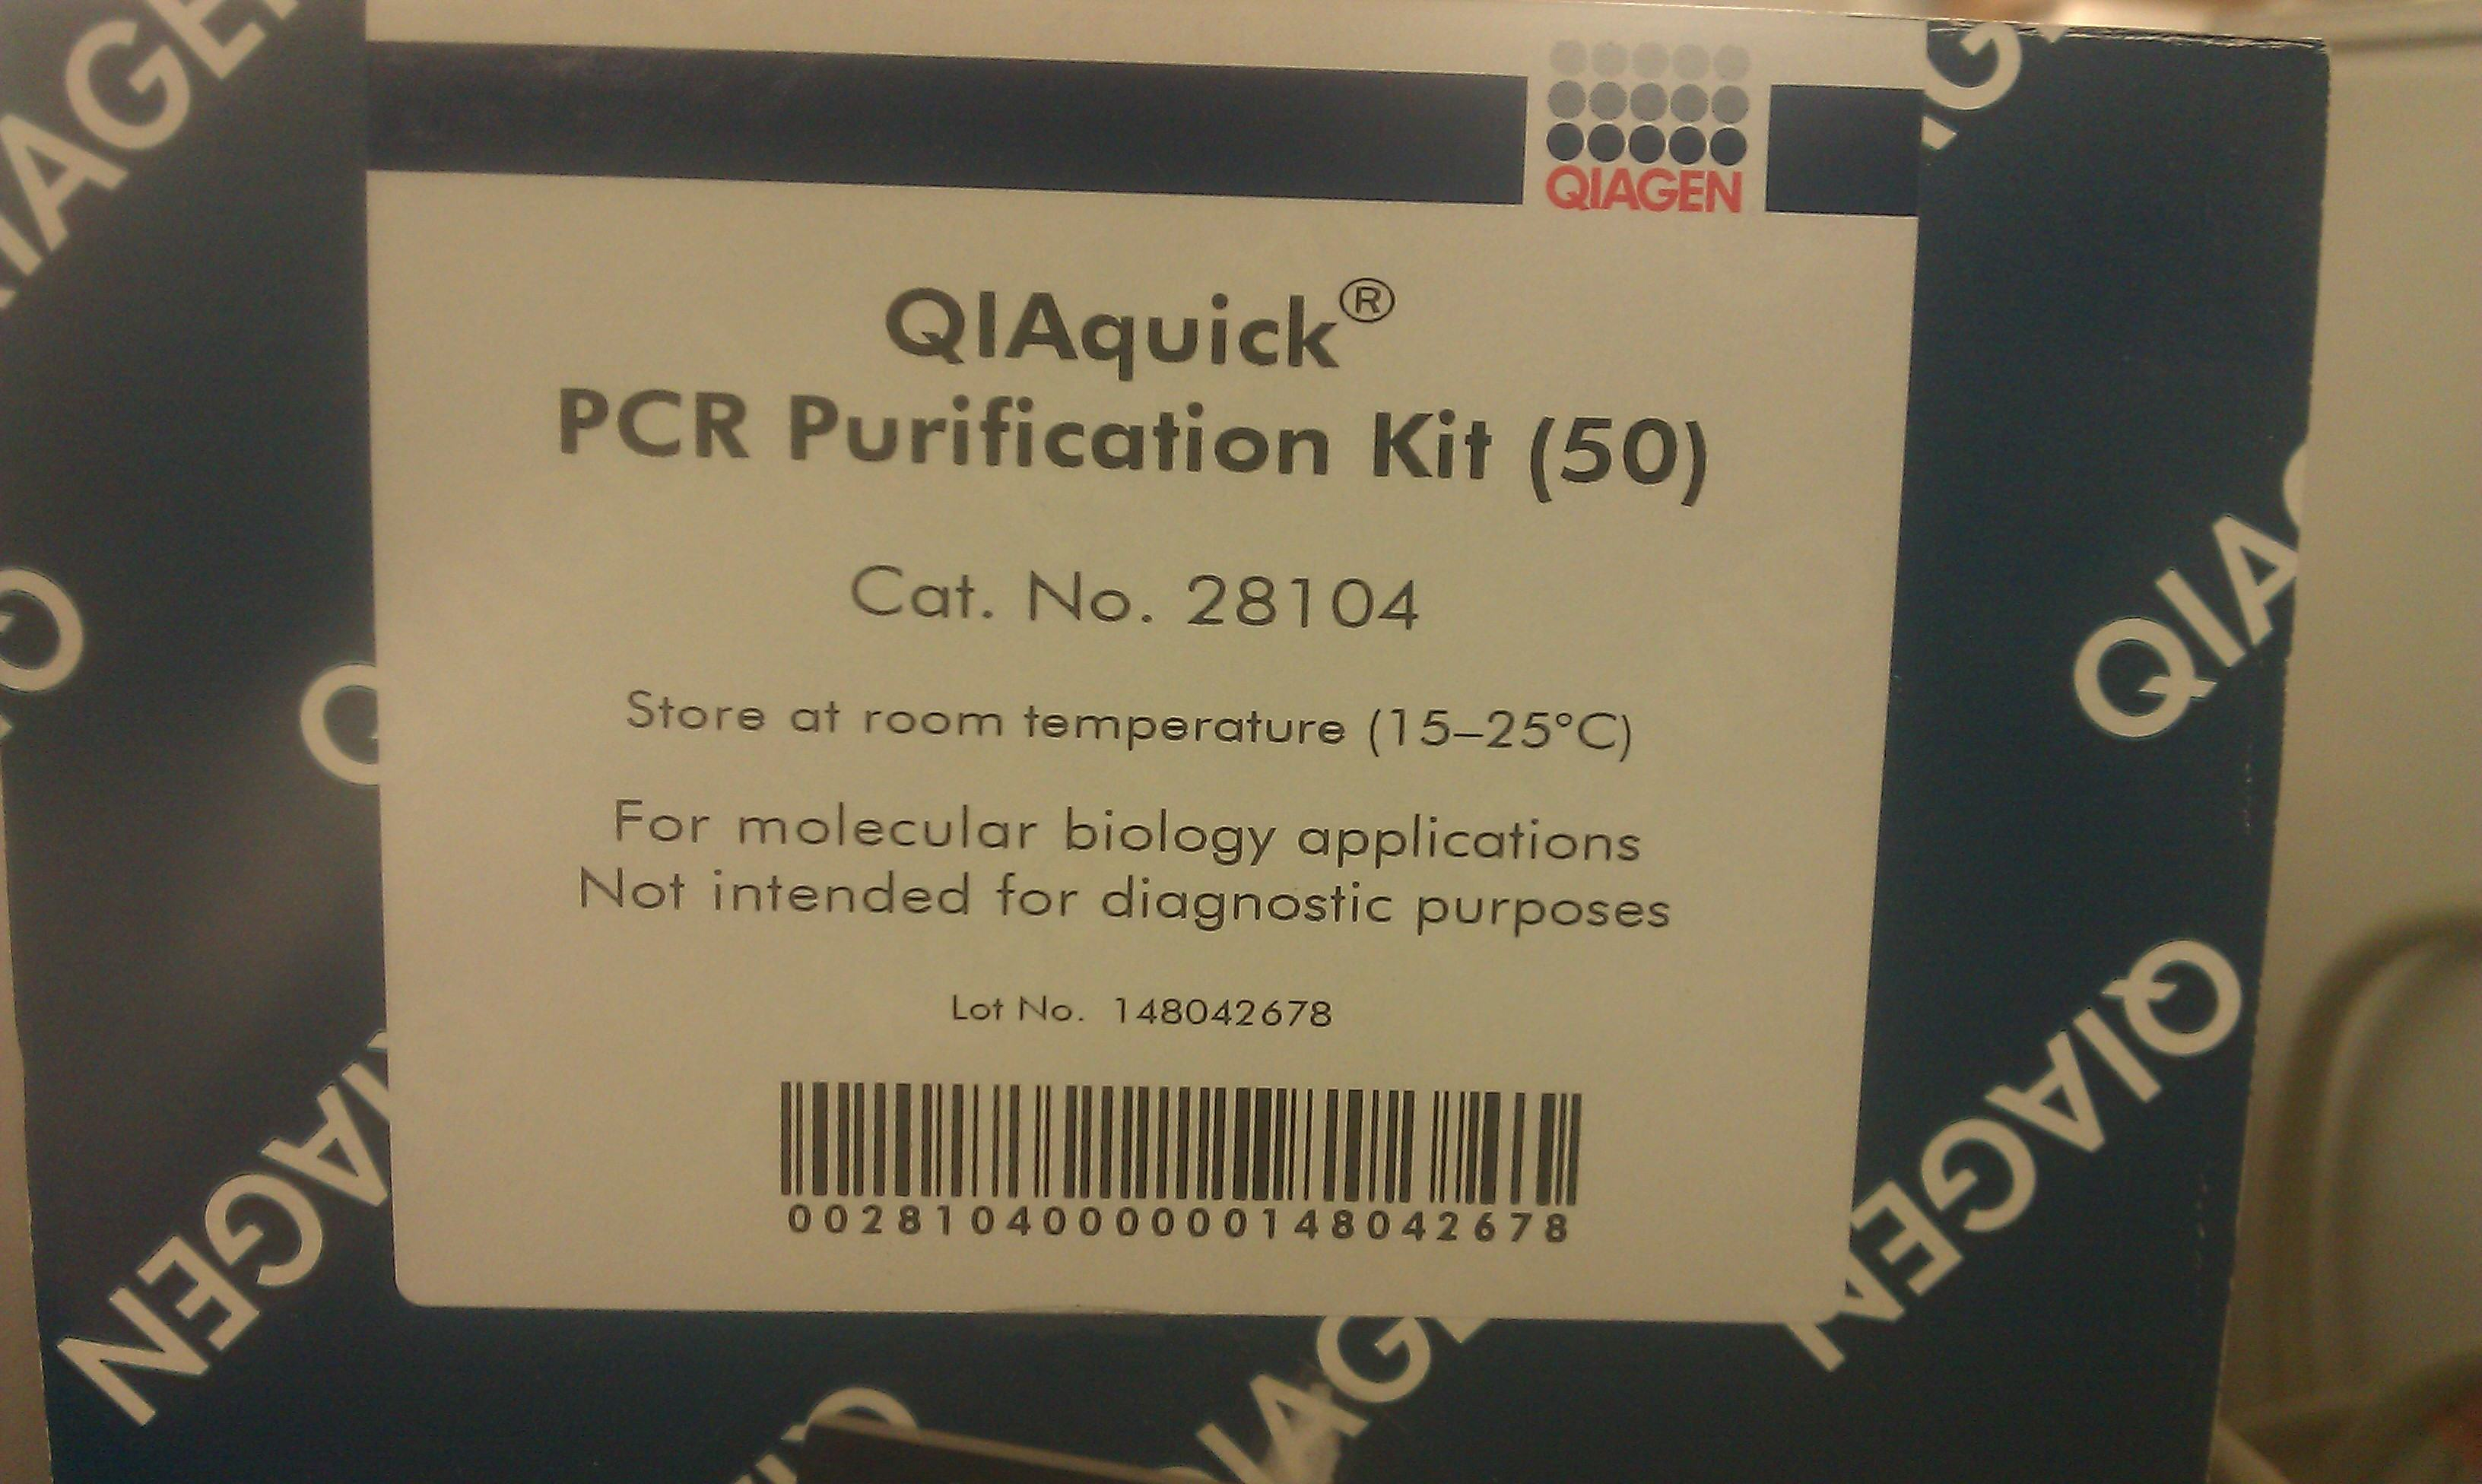 qiaquick pcr purification kit manual